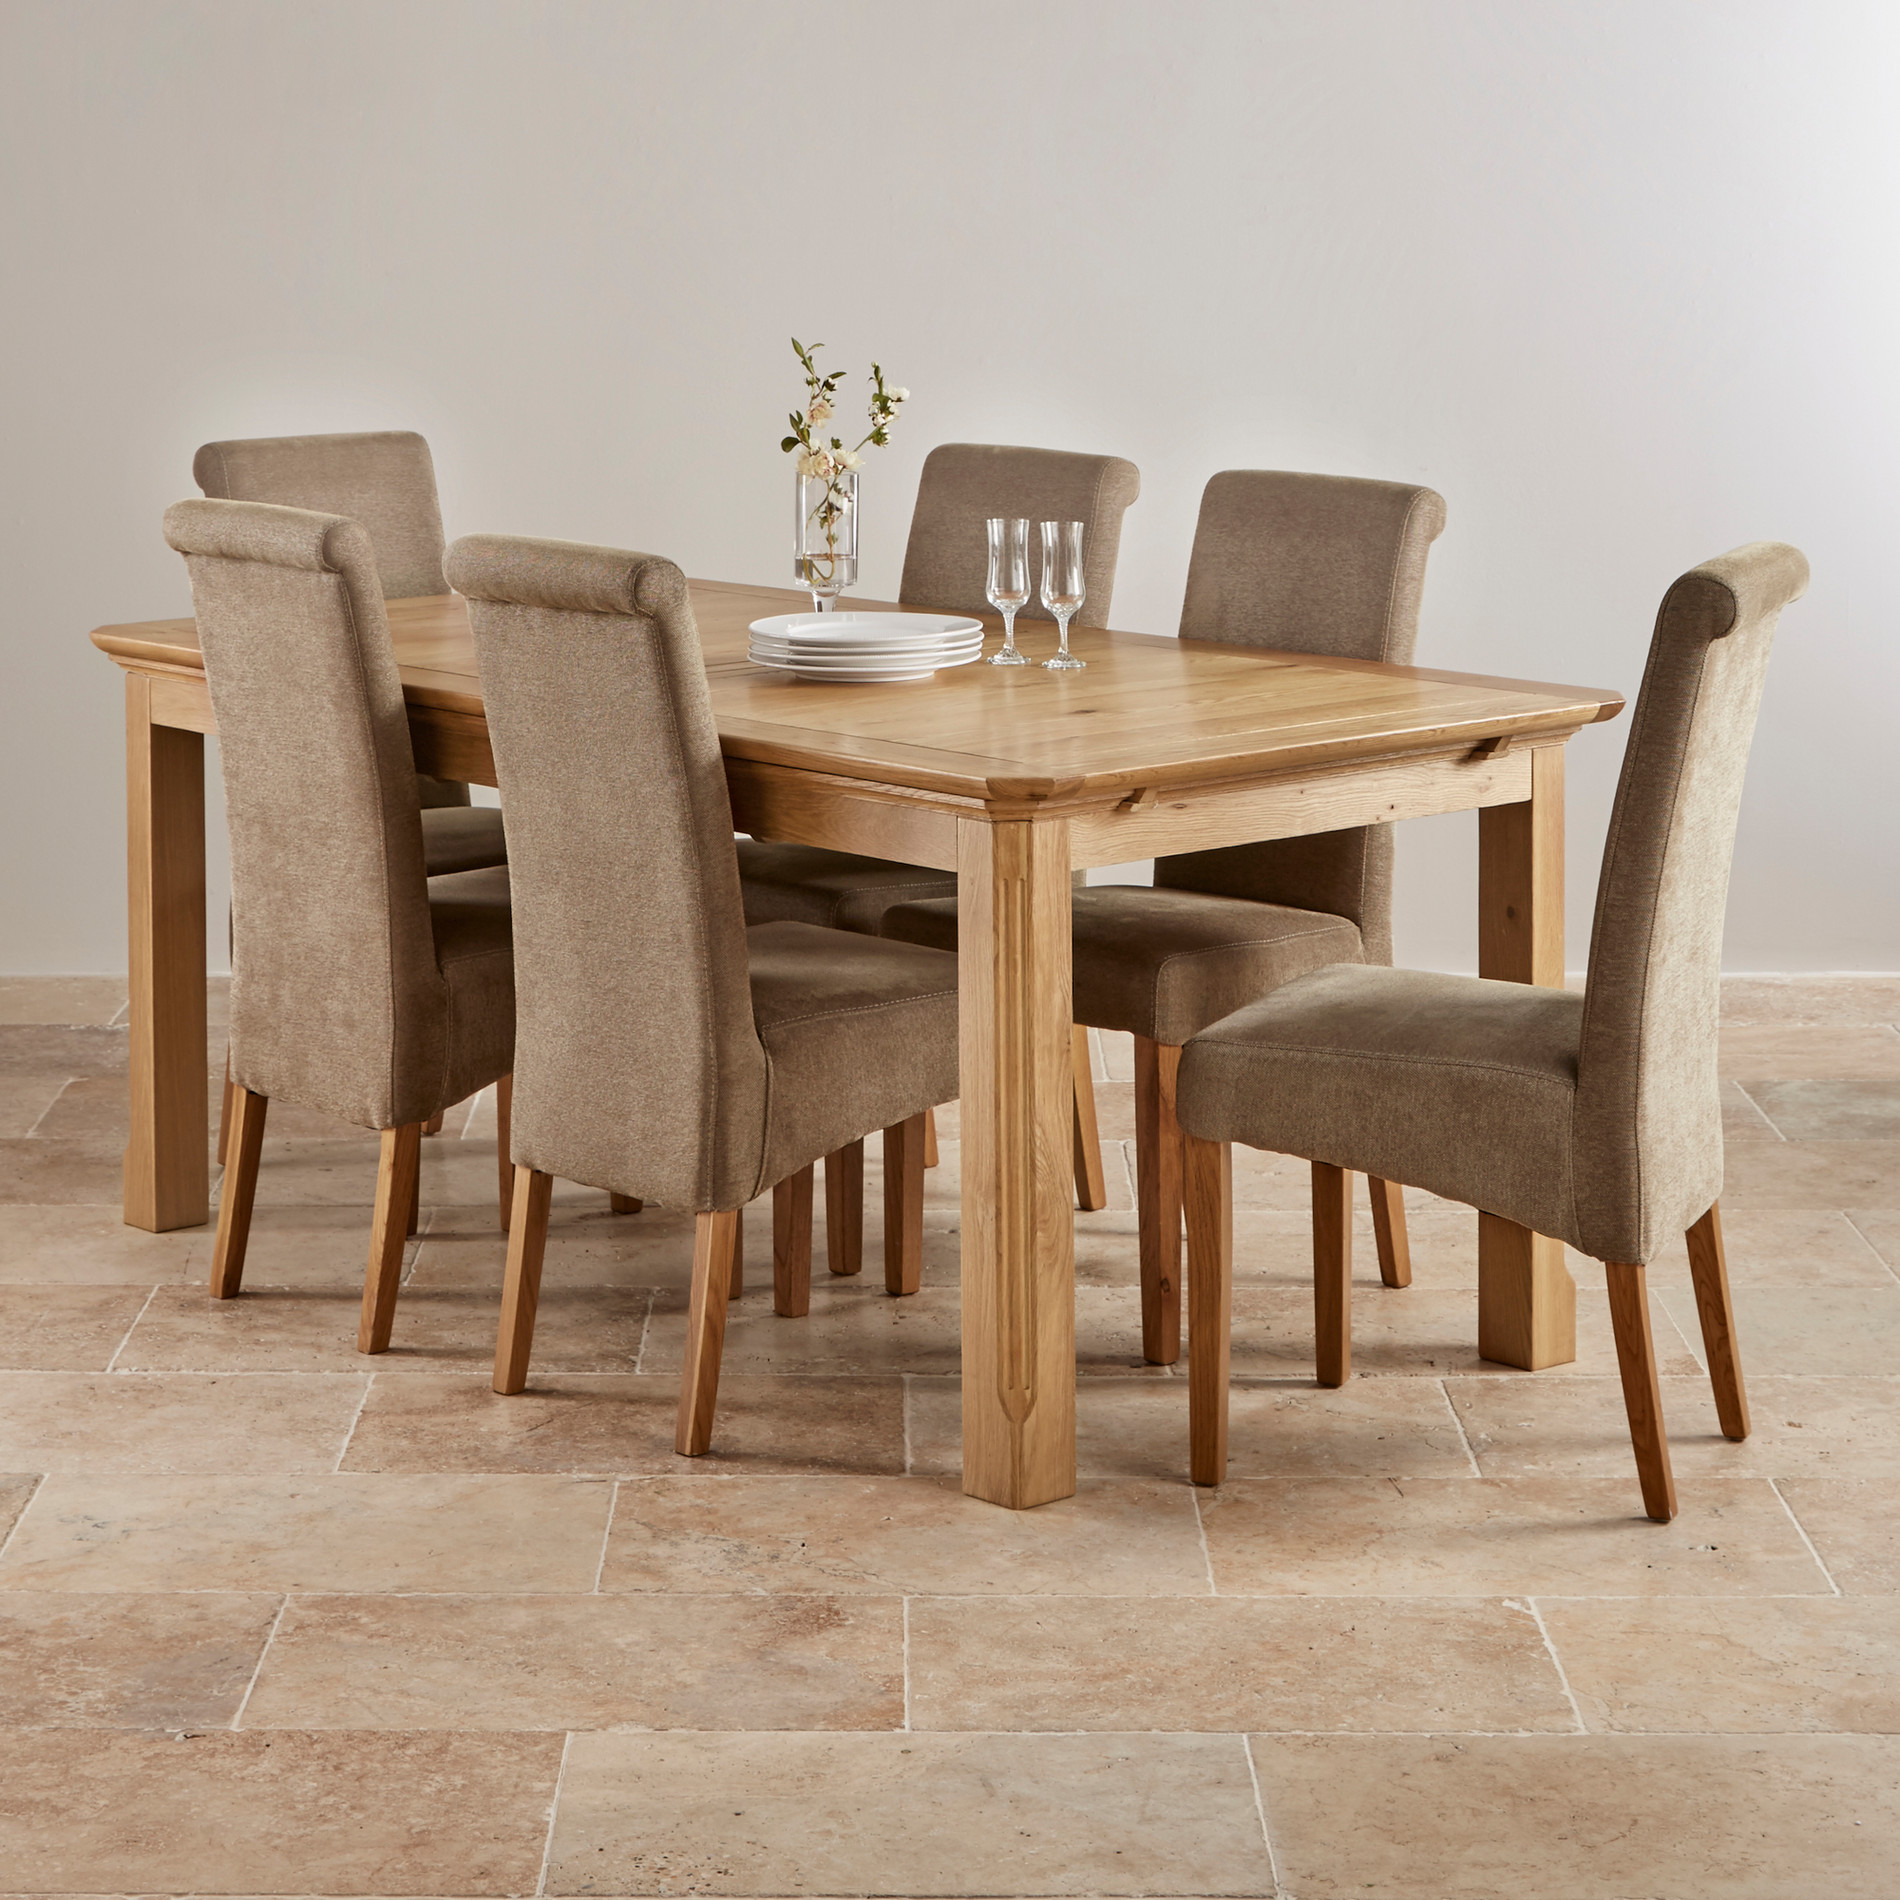 Edinburgh natural solid oak dining set ft extending